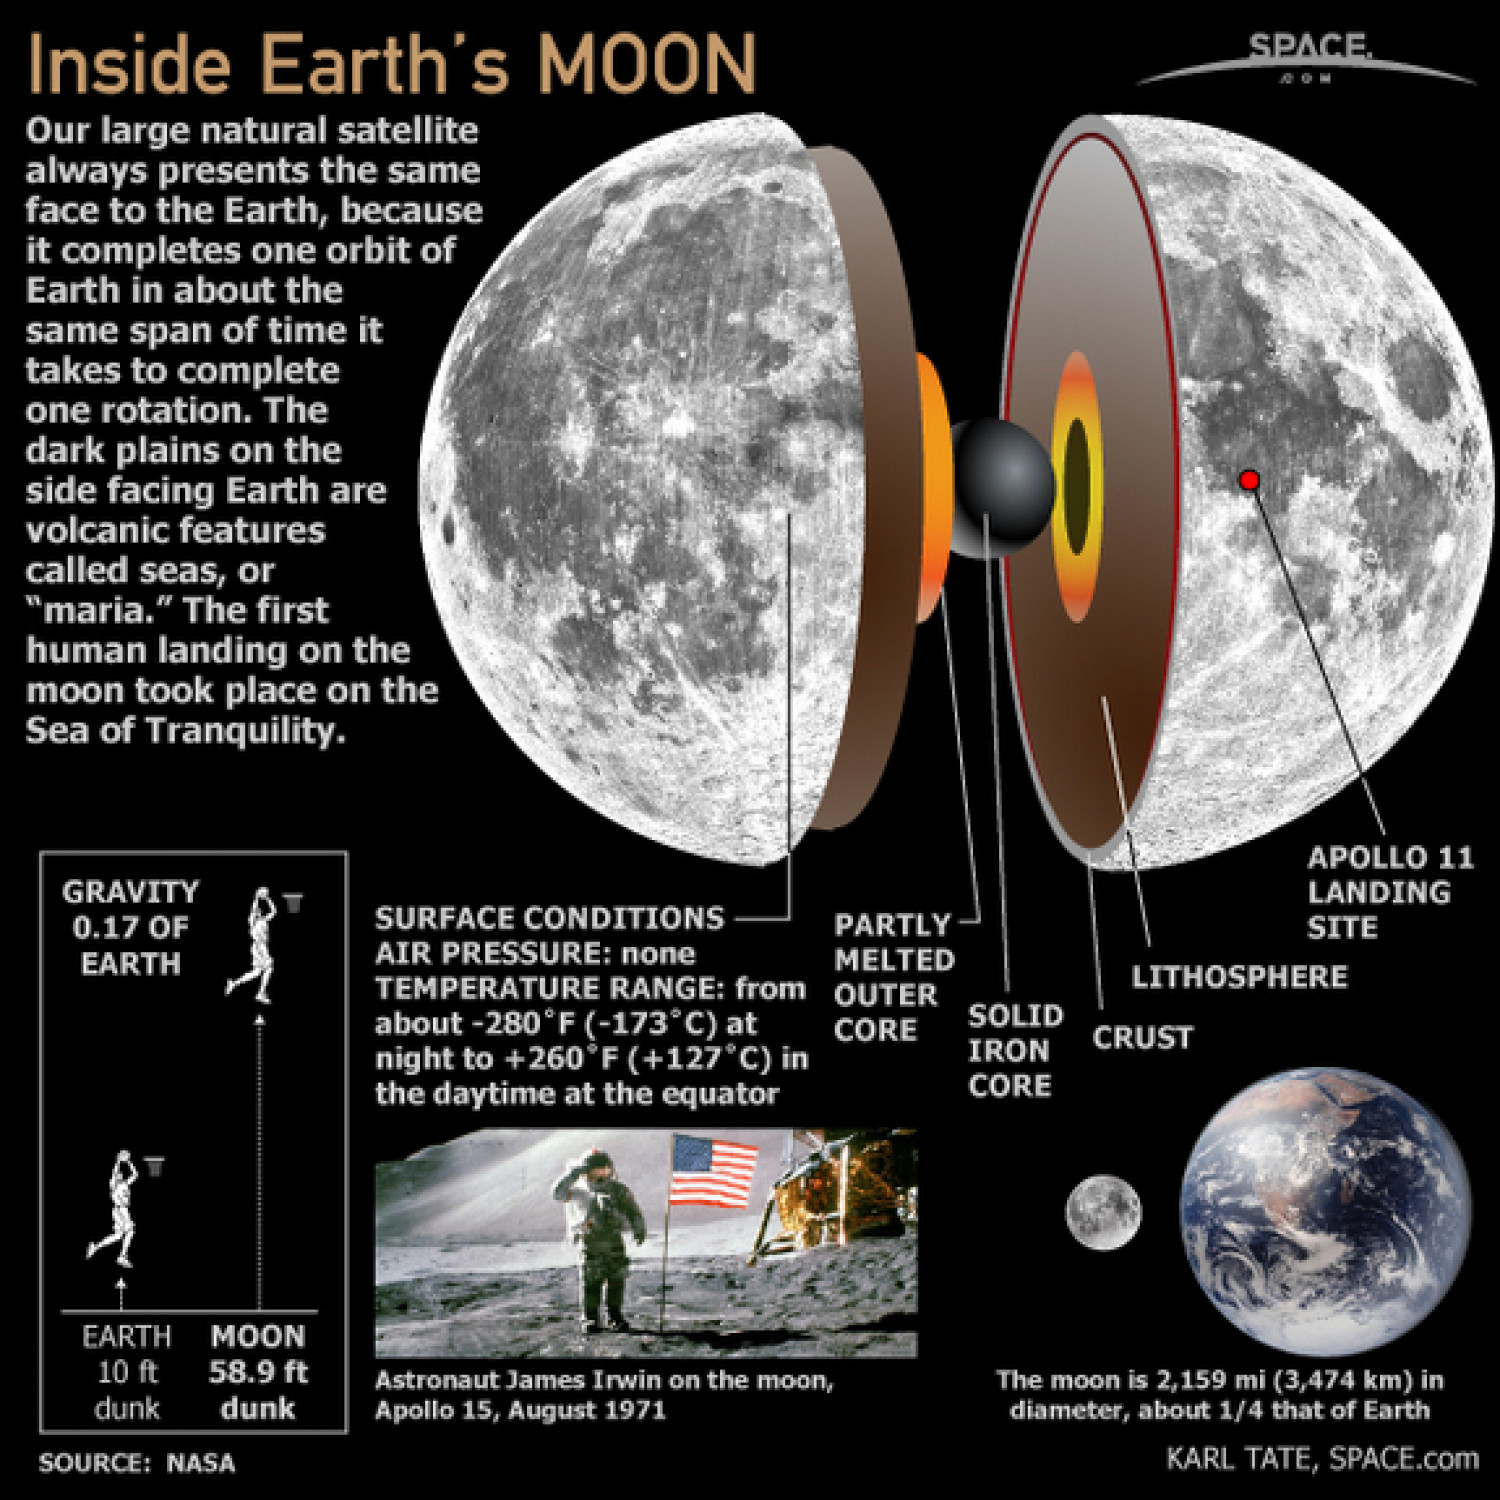 The Earth's Moongraphic